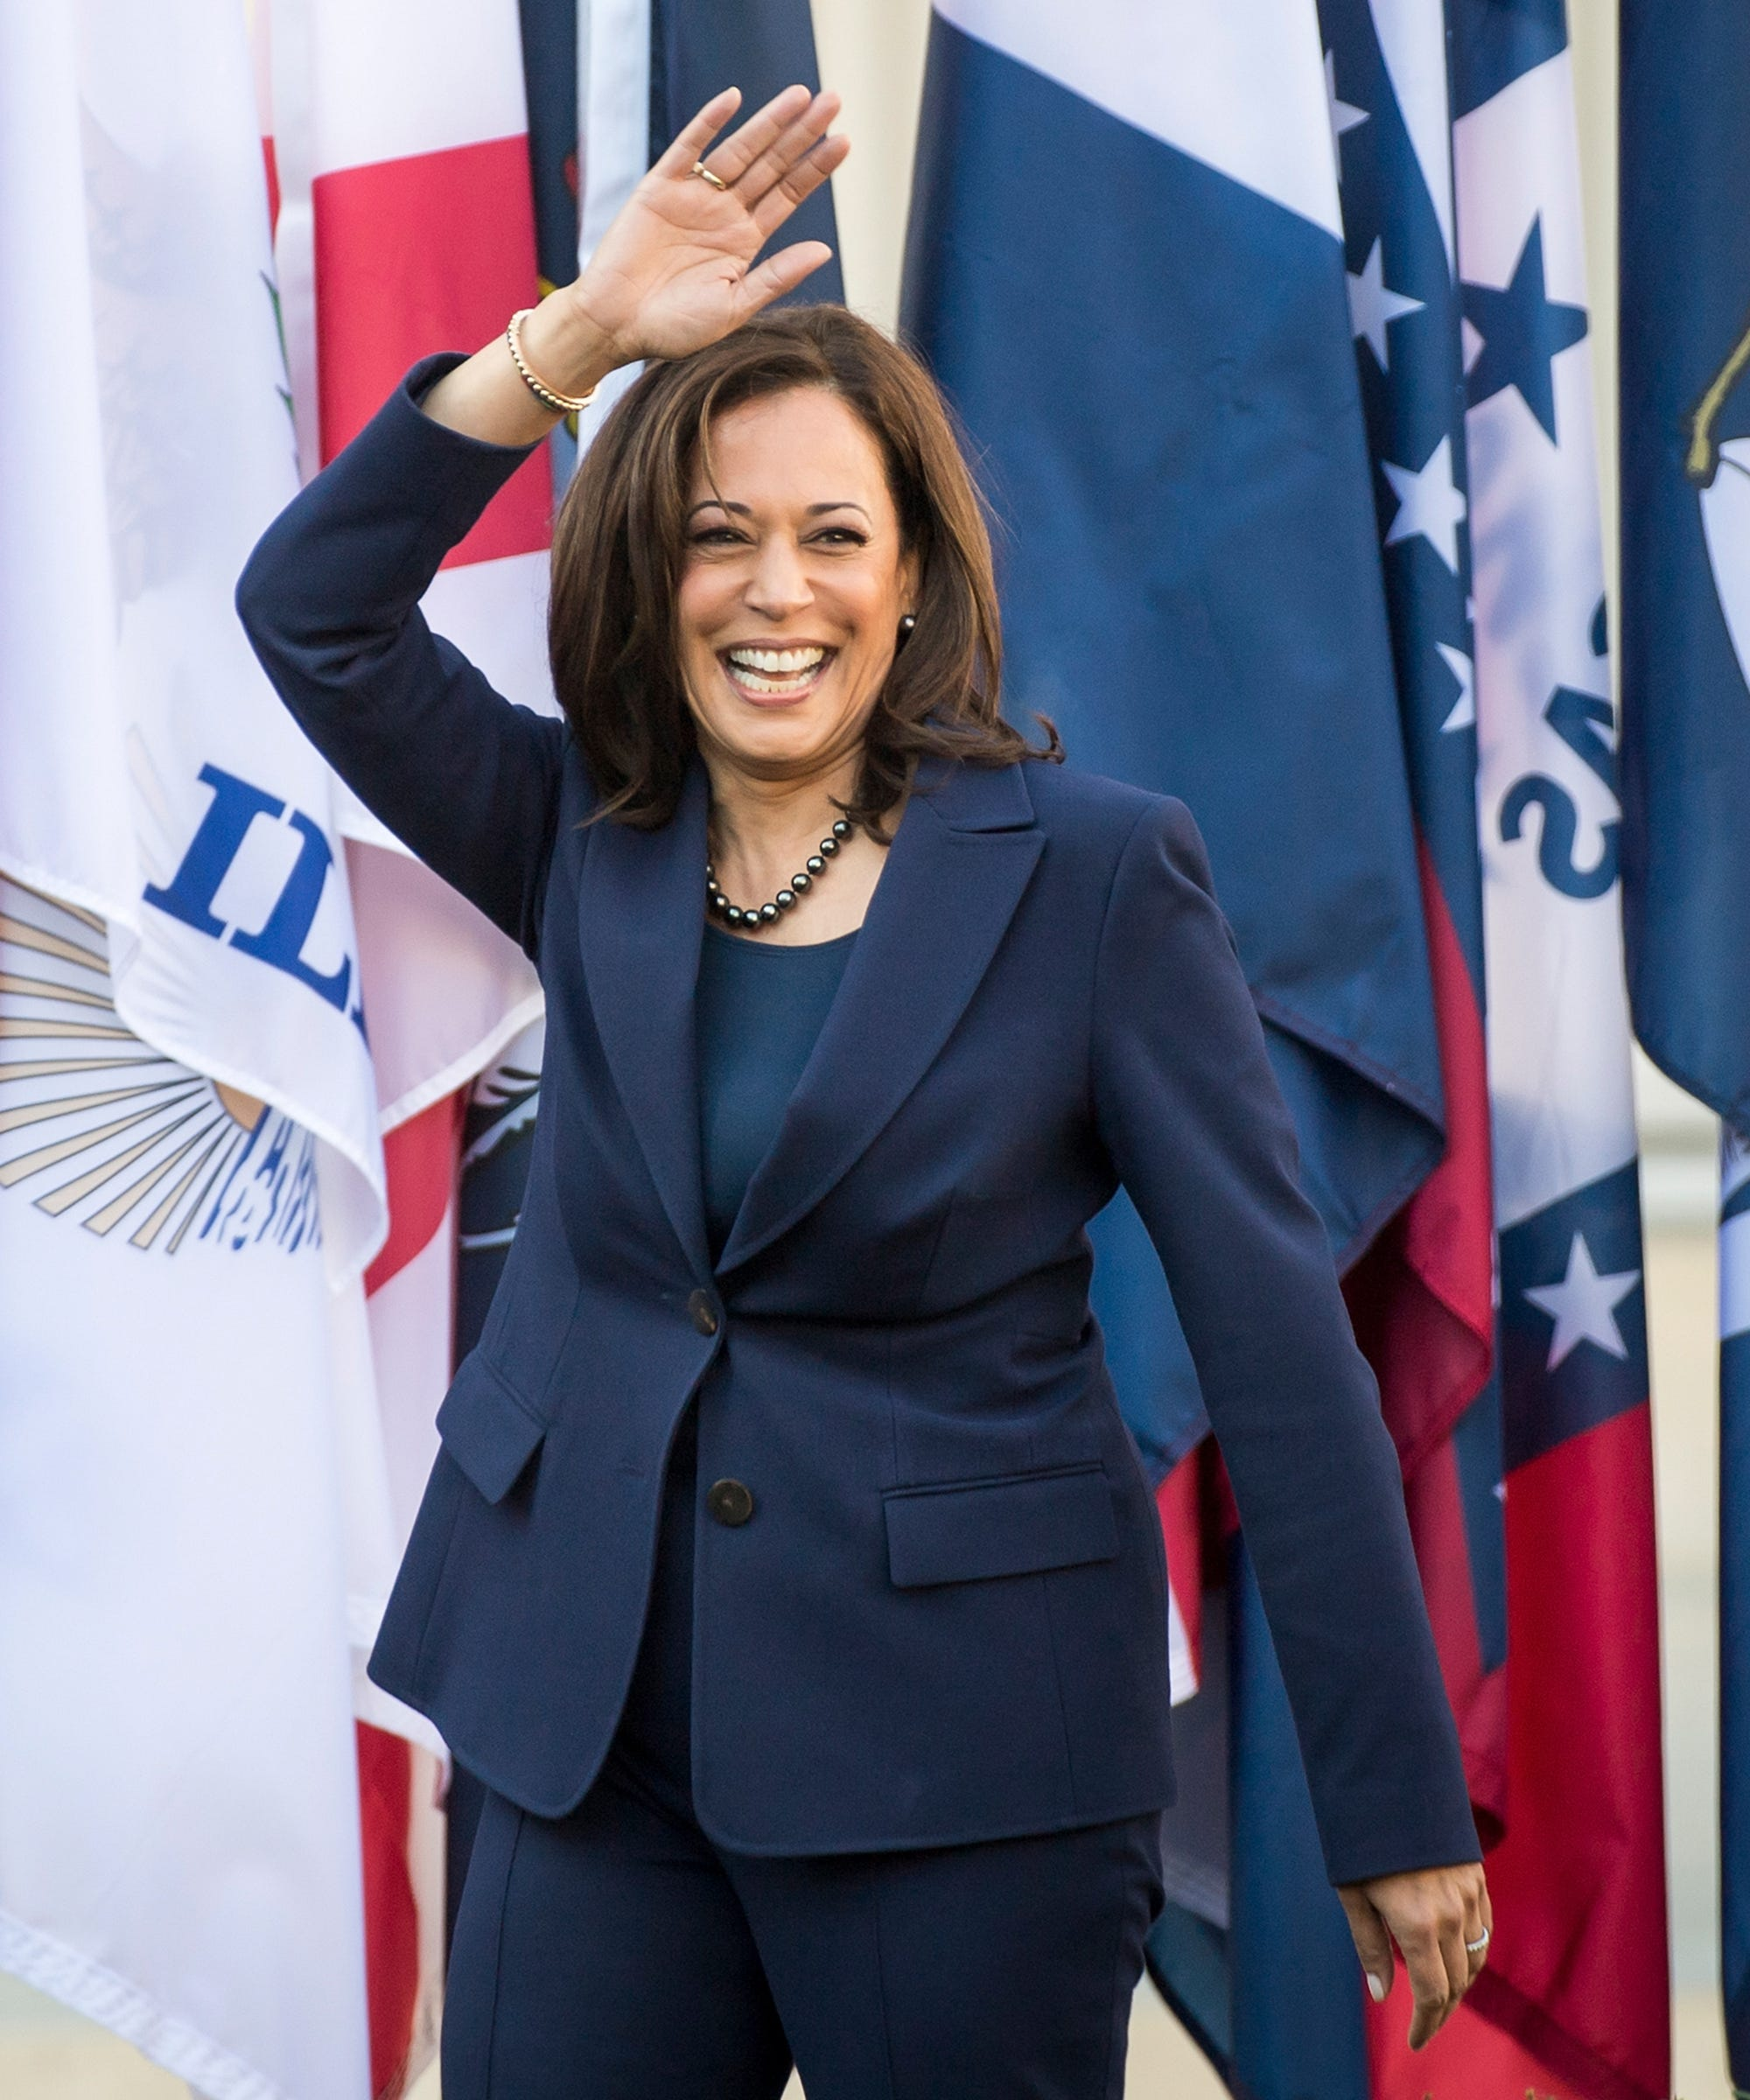 Who Is Running For President In 2020?